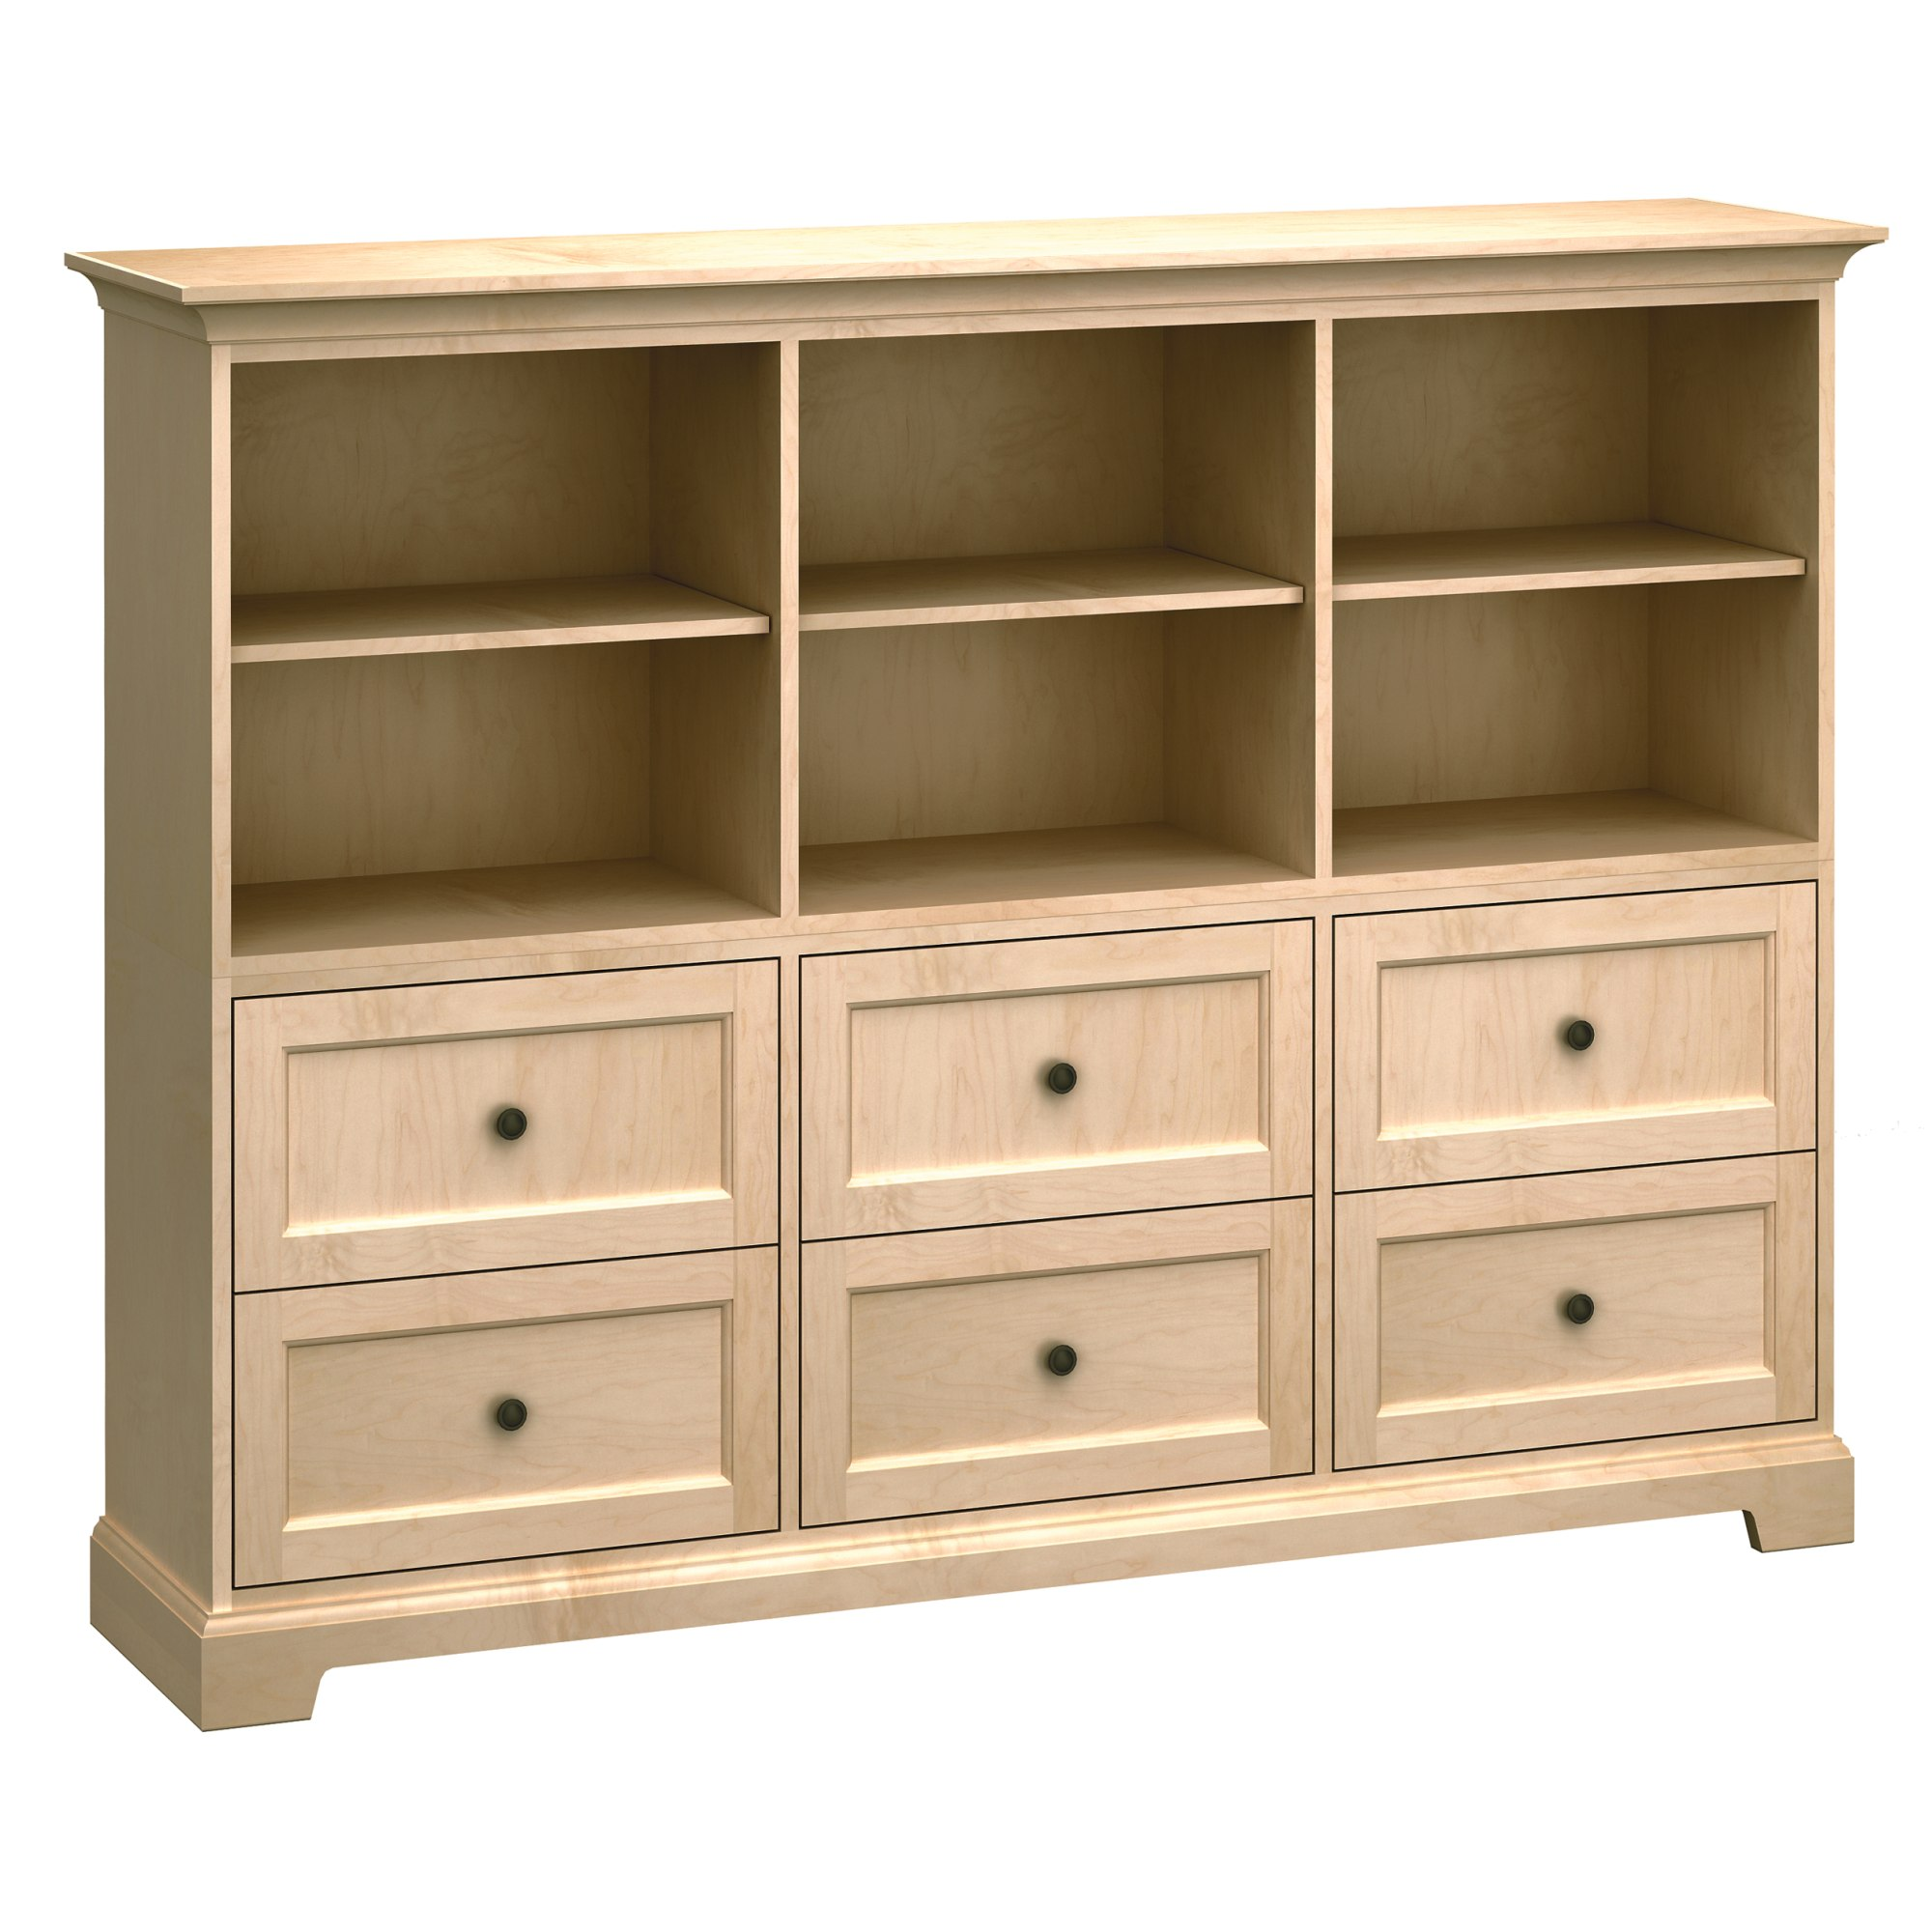 Image for HS73D Custom Home Storage Cabinet from Howard Miller Official Website